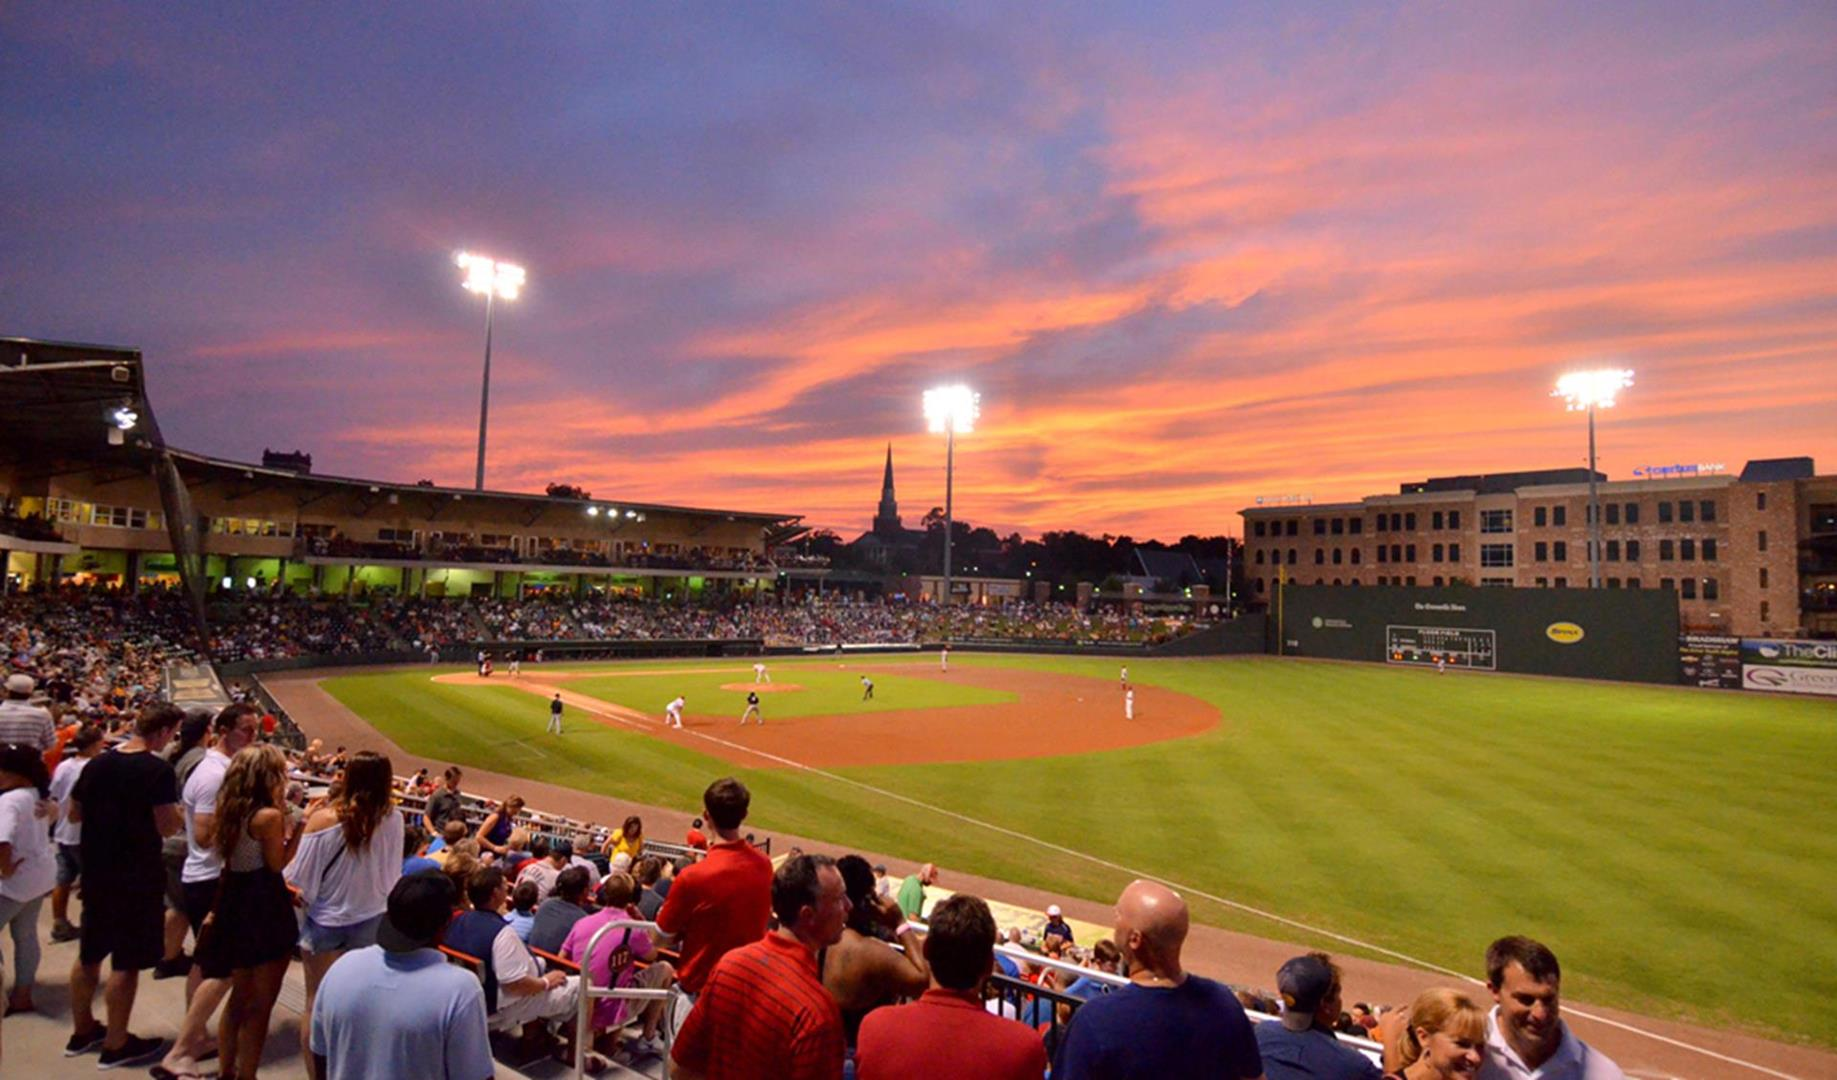 Scenery and Top Facilities Lure Sports Events to Greenville, SC